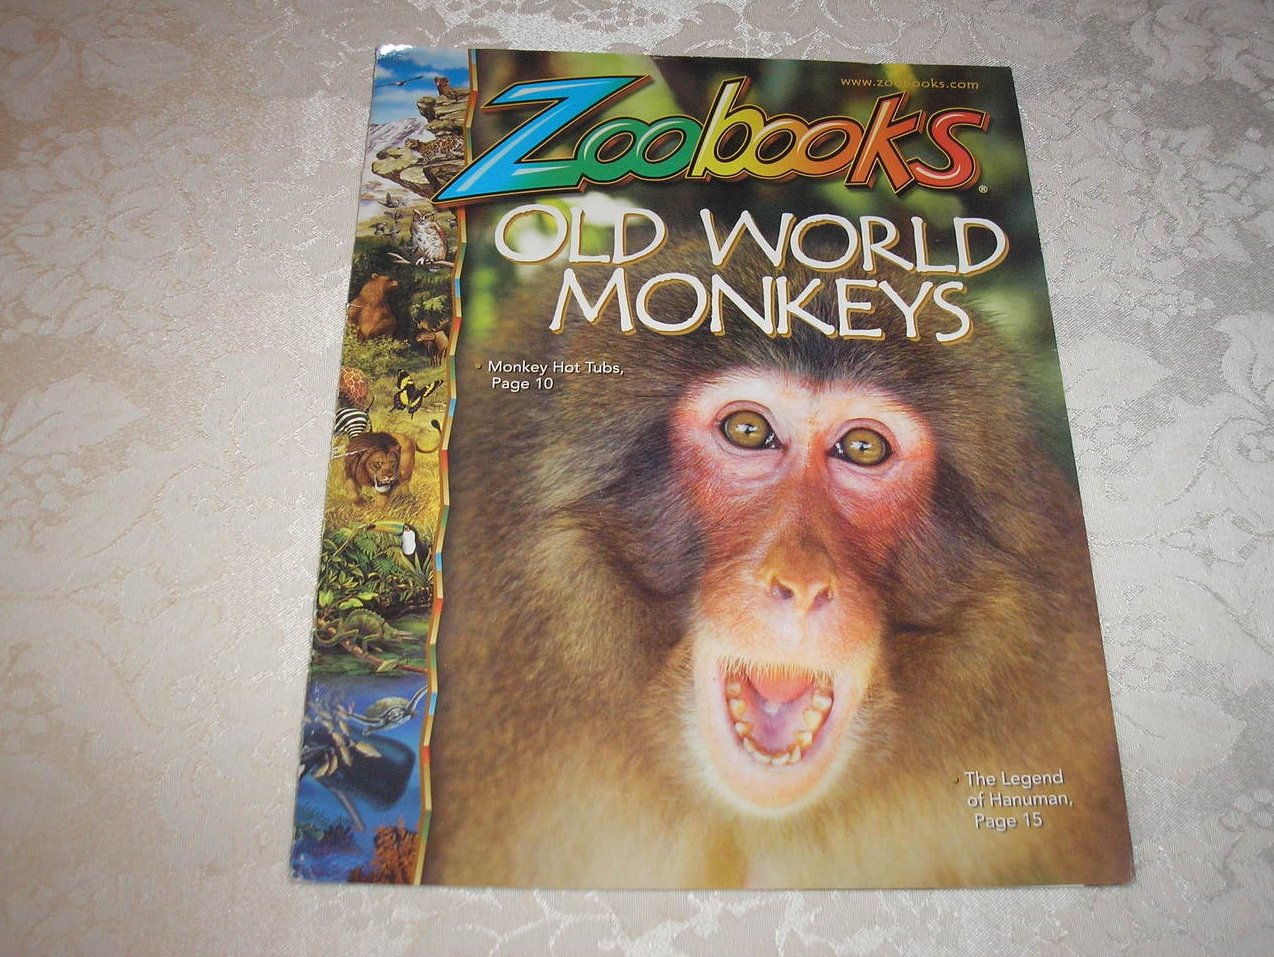 Zoobooks Magazine April 2010 Old World Monkeys good sc